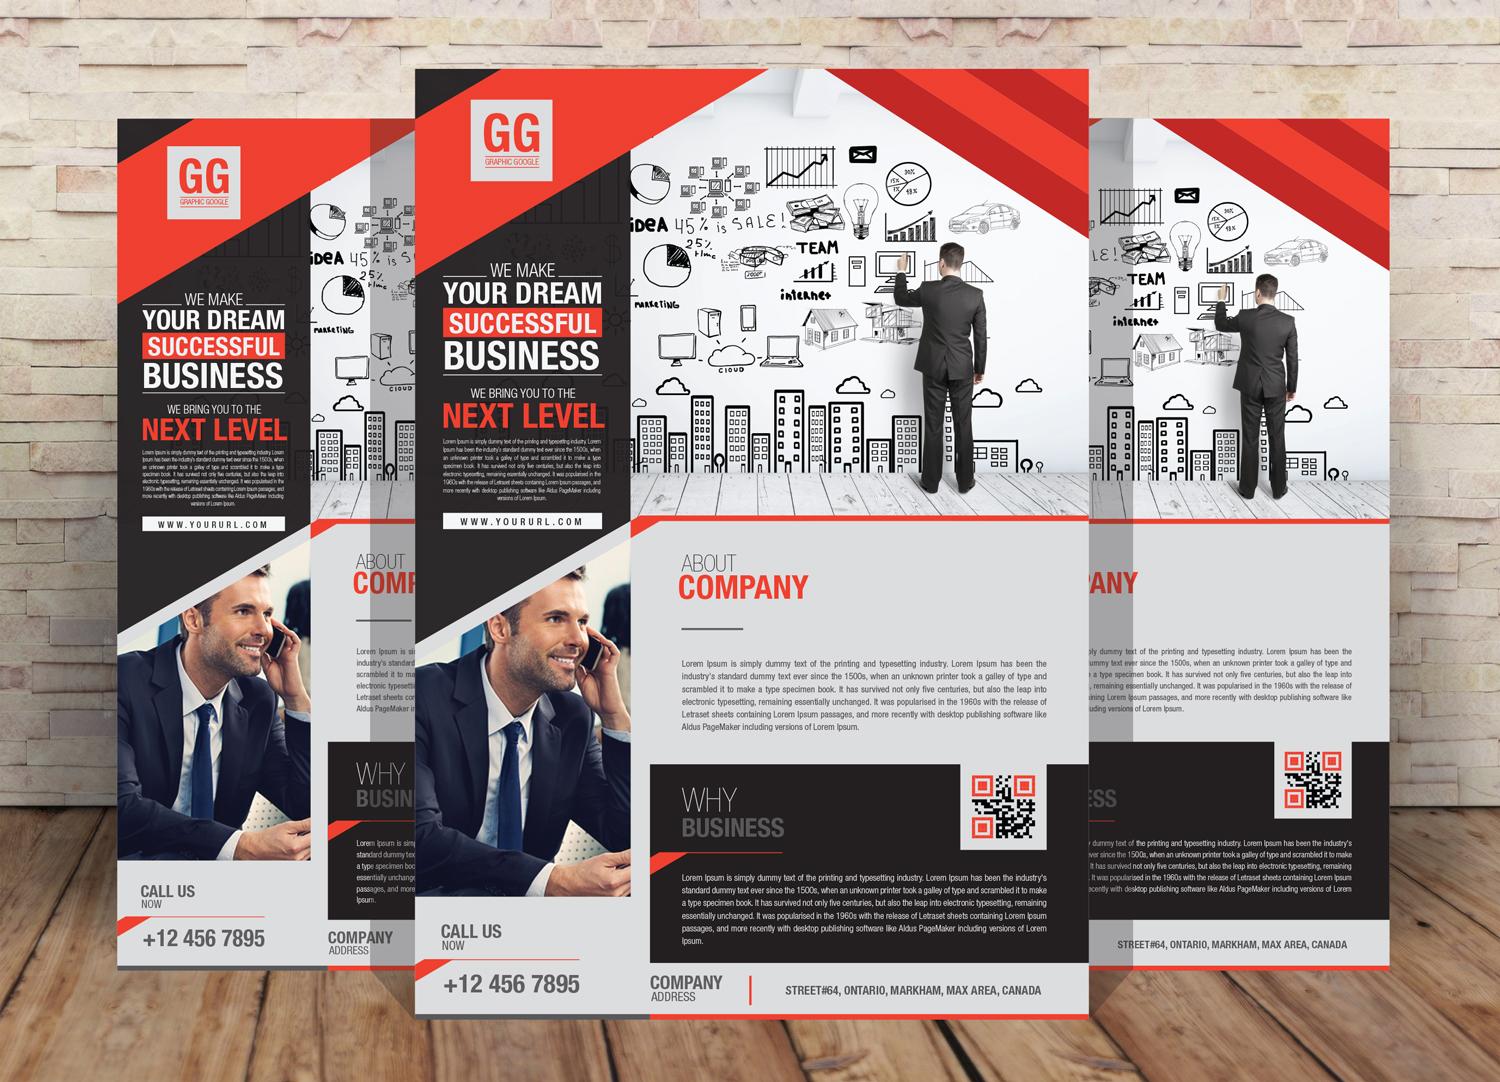 Free business flyer design template for your corporate business in 2017 free business flyer design template friedricerecipe Images